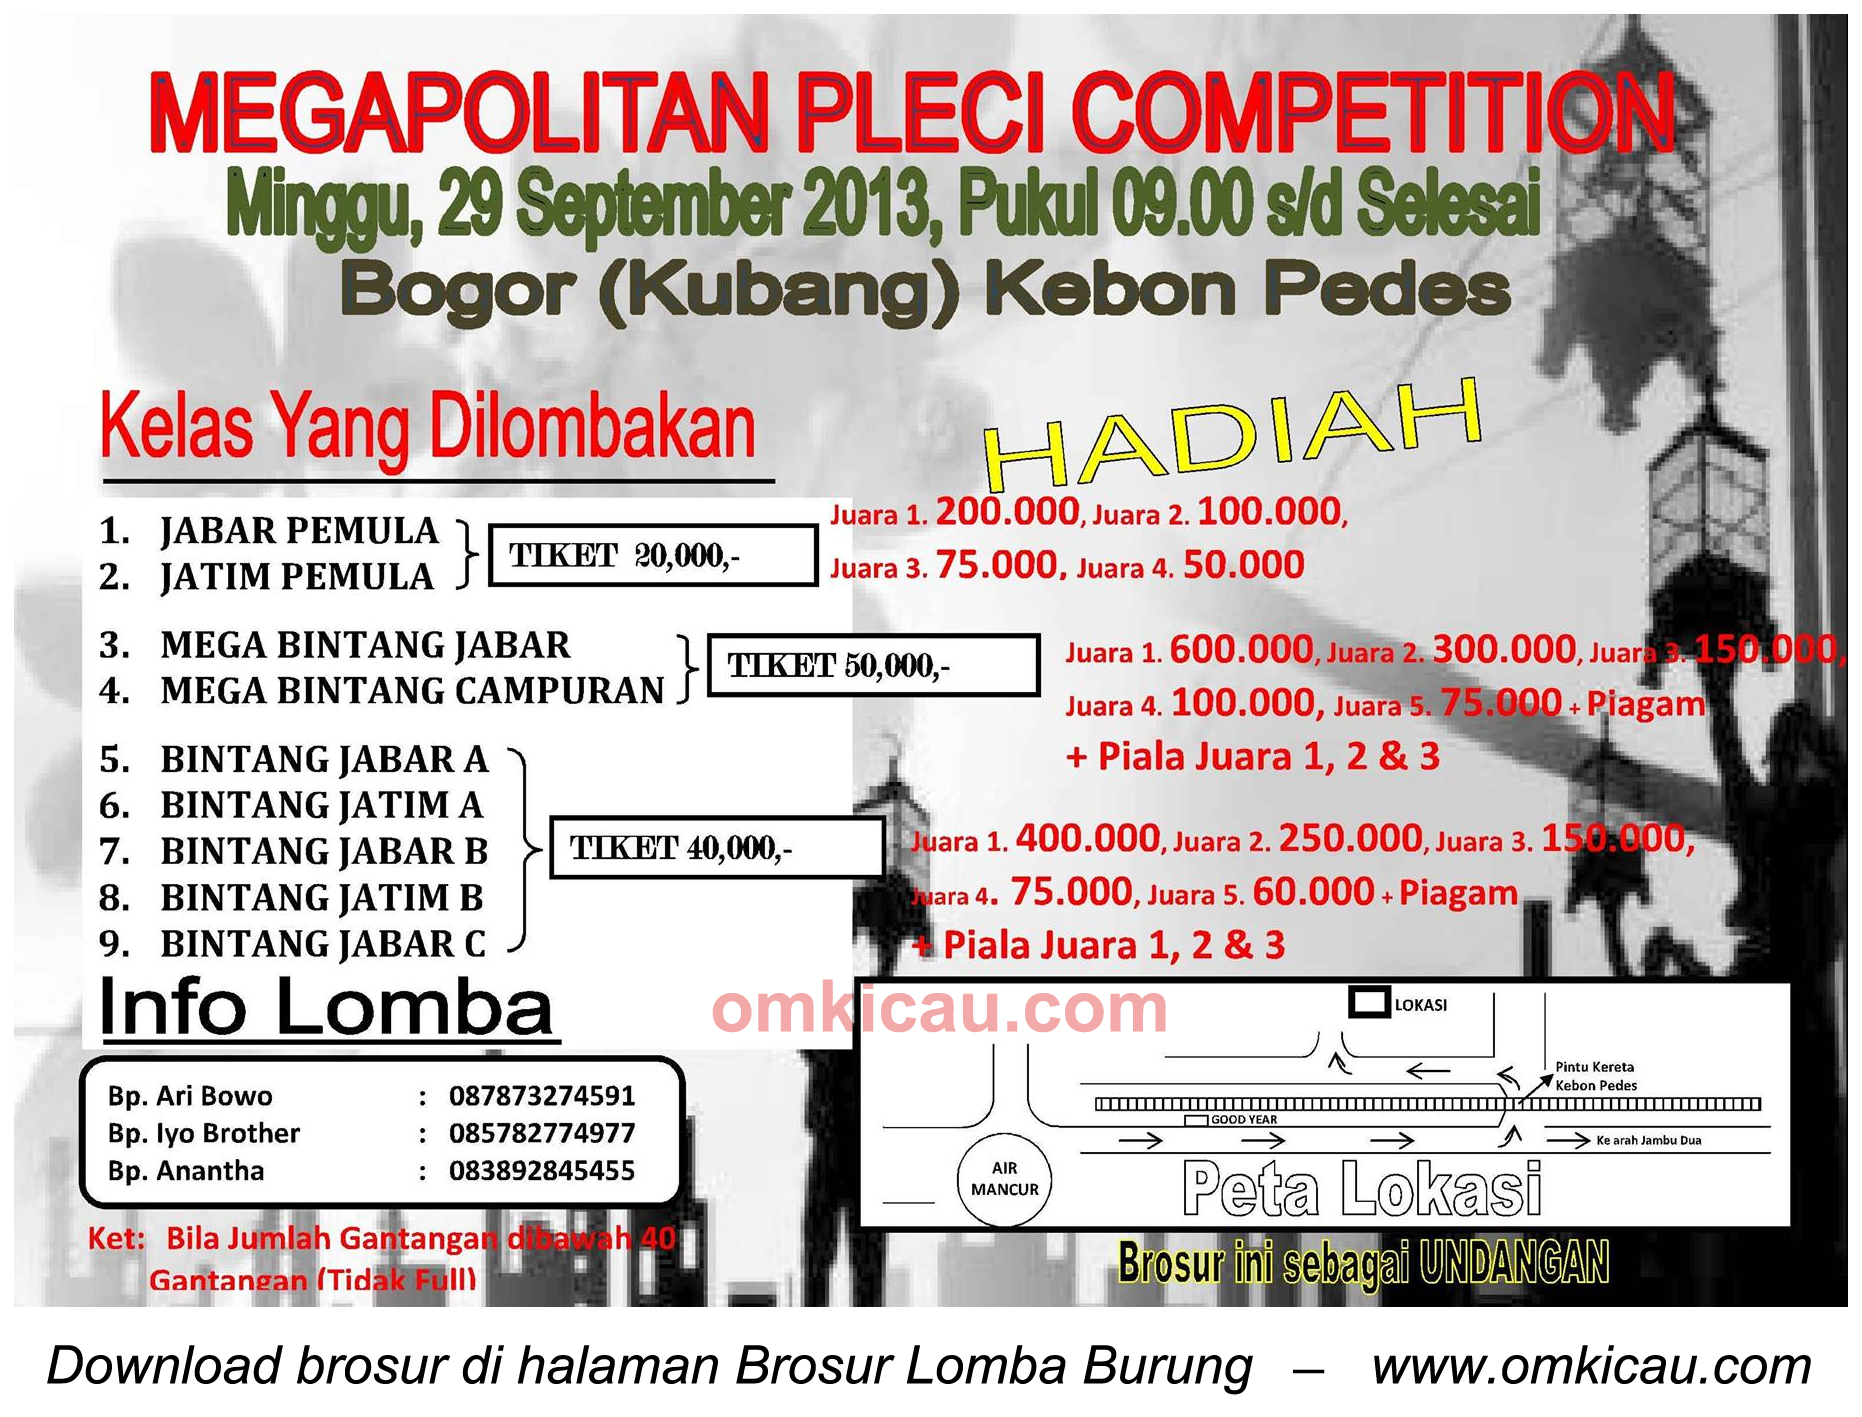 Brosur Megapolitan Pleci Competition, Bogor, 29 September 2013